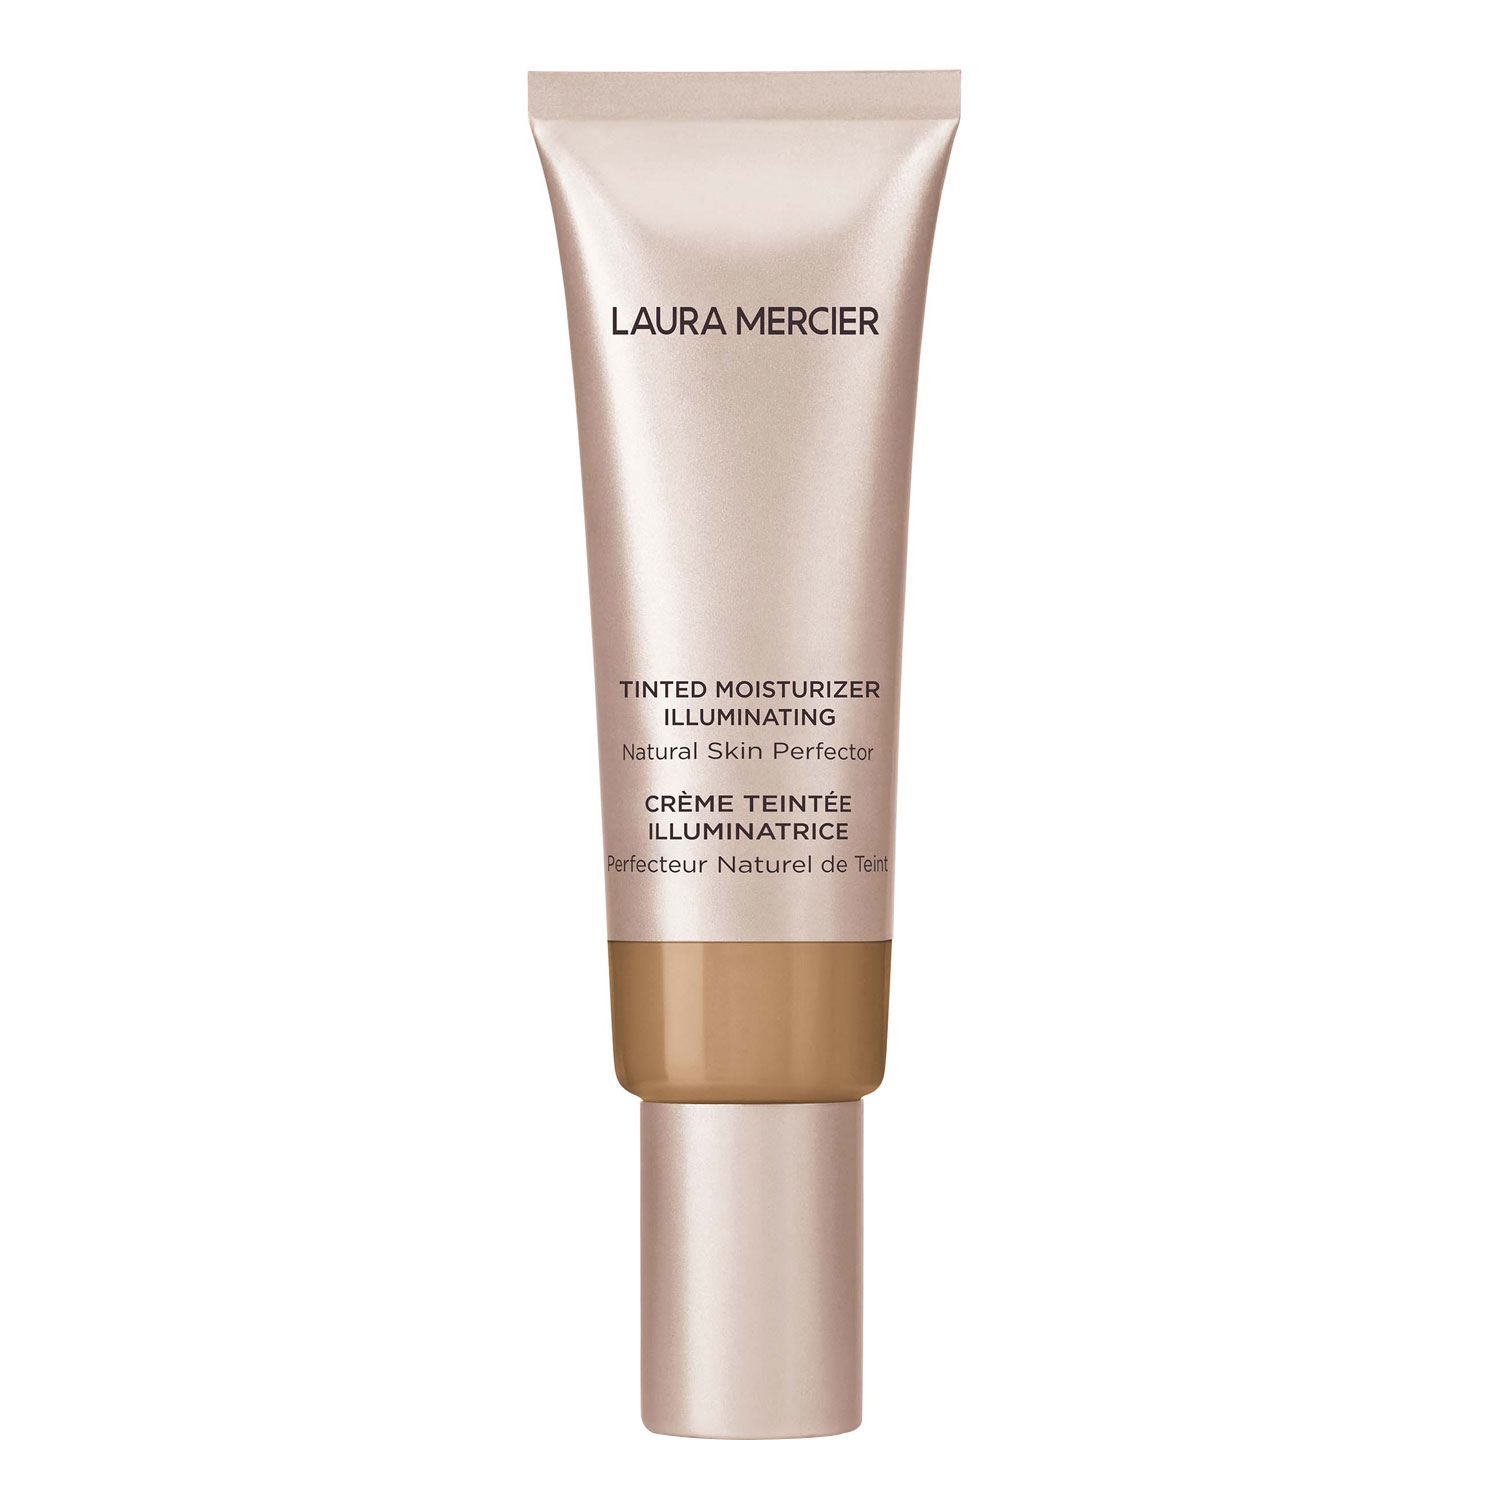 TINTED MOISTURIZER ILLUMINATING NATURAL SKIN PERFECTOR BROAD SPECTRUM SPF 30 (CREMA HIDRATANTE CON COLOR ACABADO LUMINOSO)